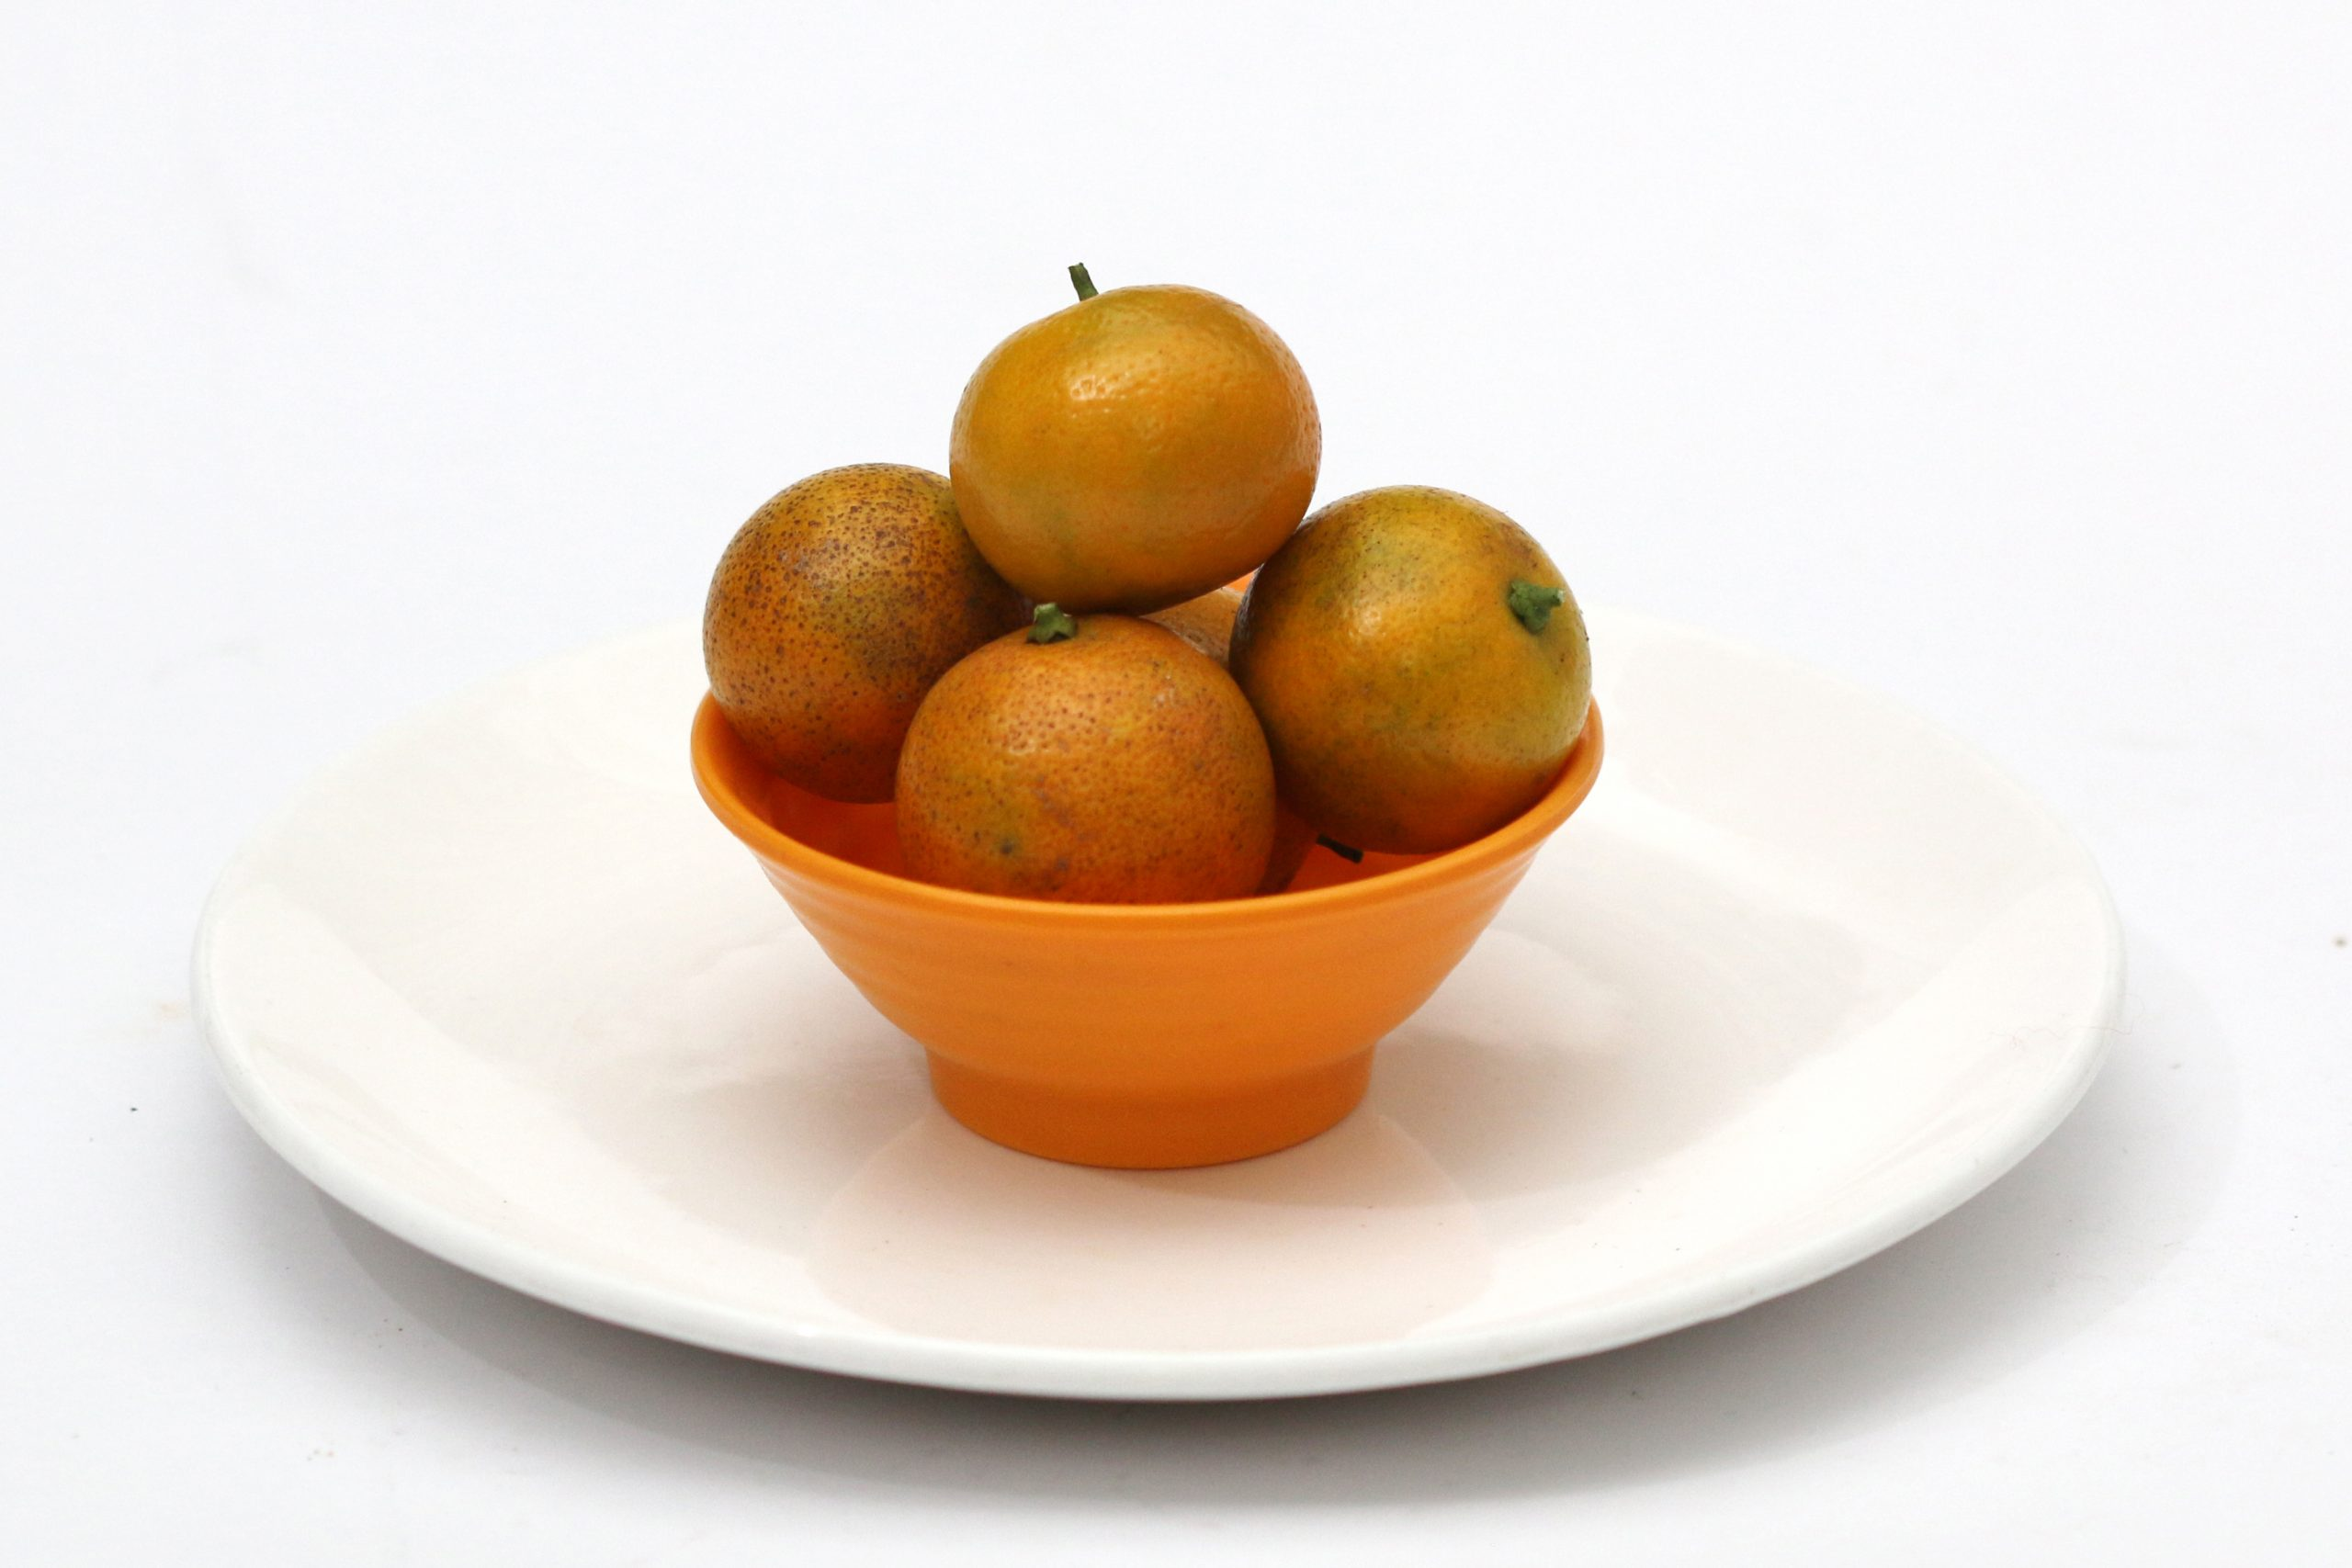 Calamansi orange in bowl